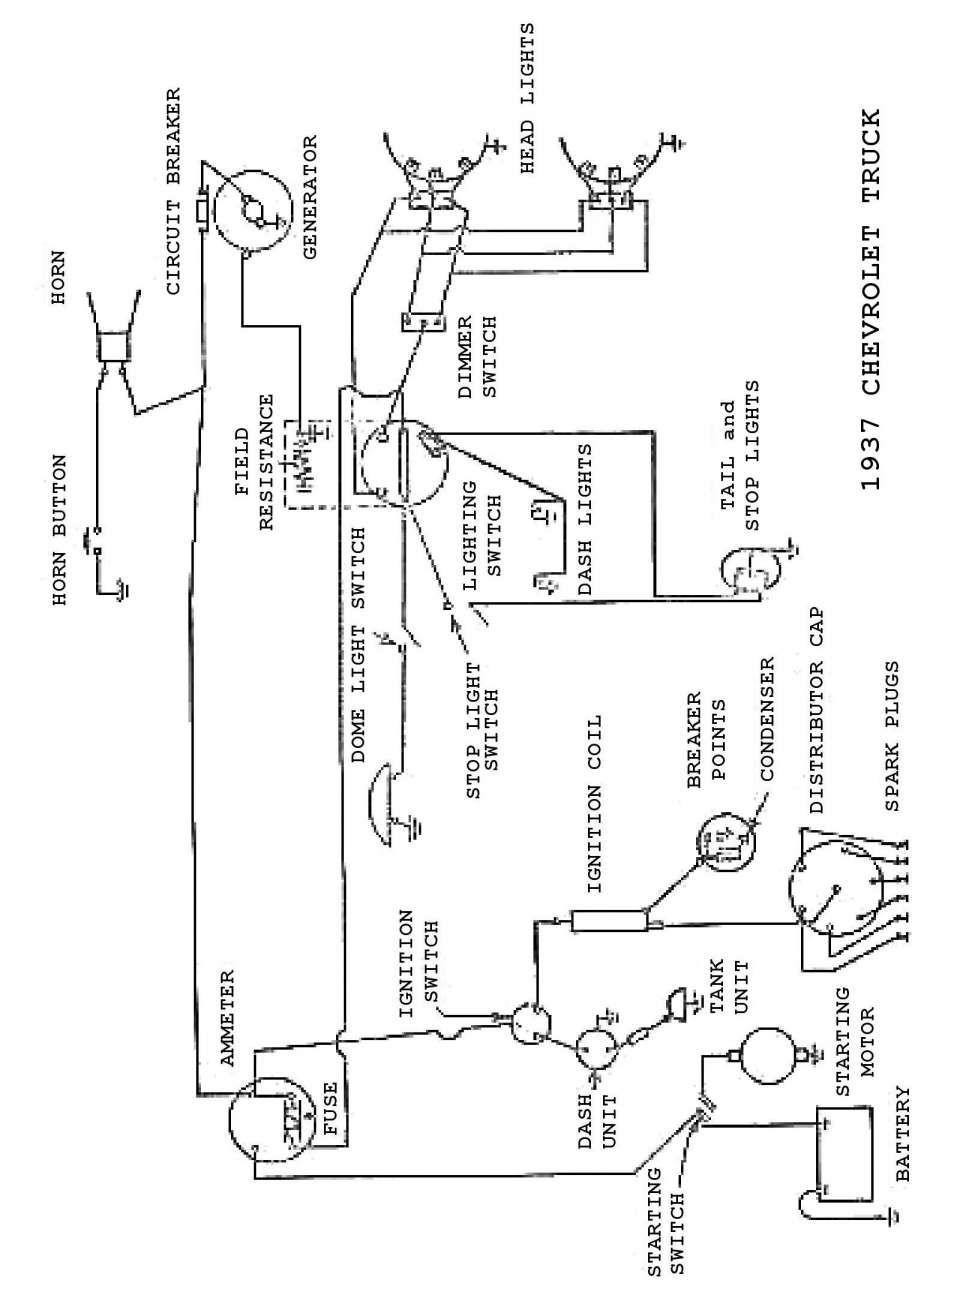 1998 Chevrolet Truck Wiring Diagram and Chevy Wiring ...